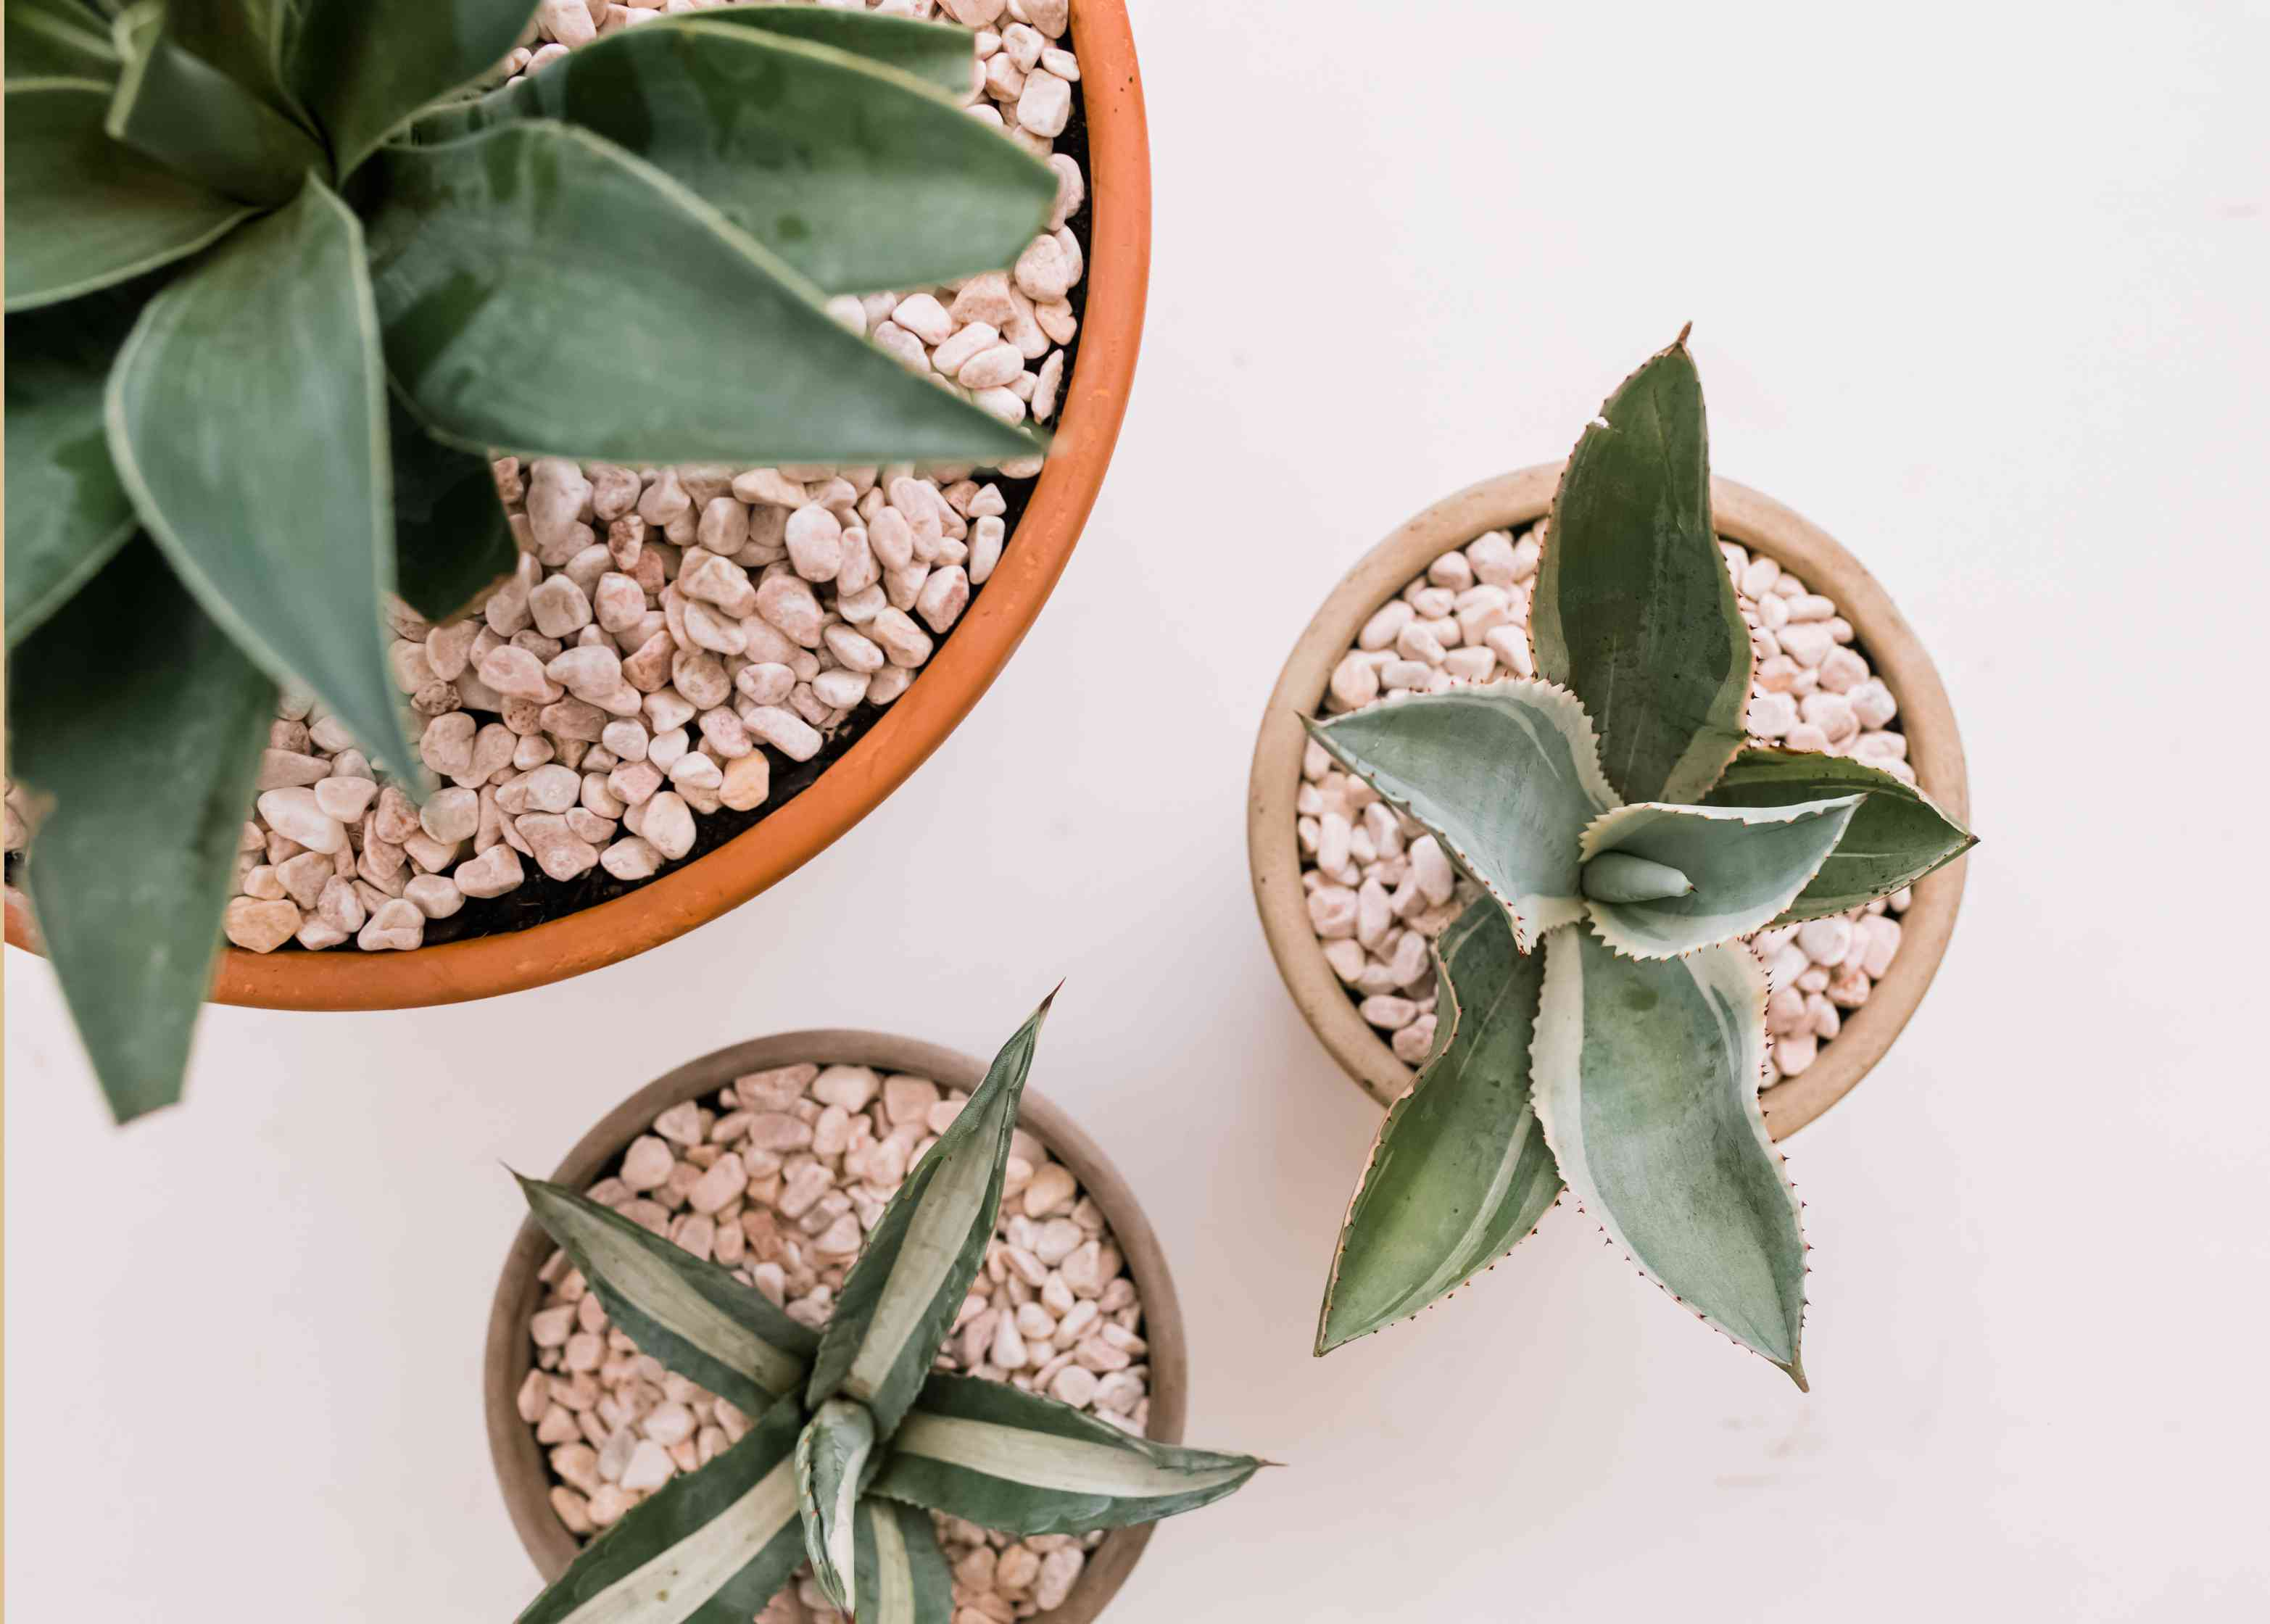 How To Grow Agave Indoors